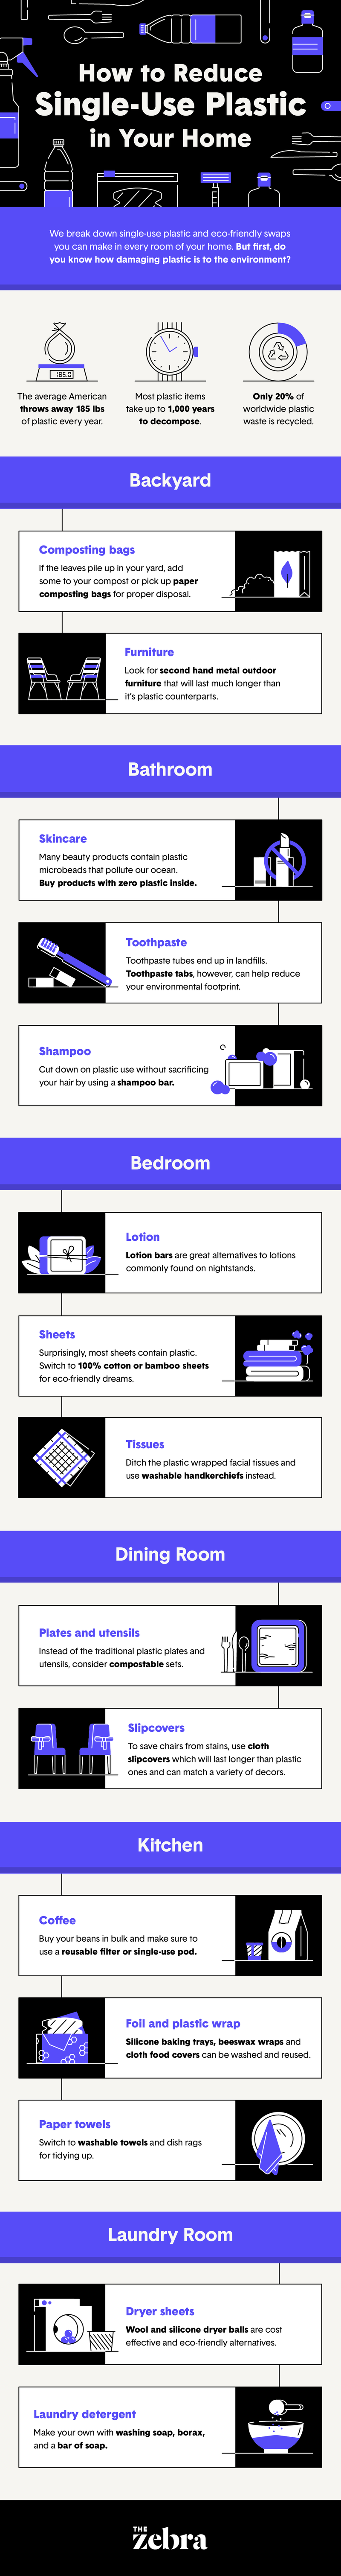 how-to-reduce-single-use-plastic-in-your-home2.png